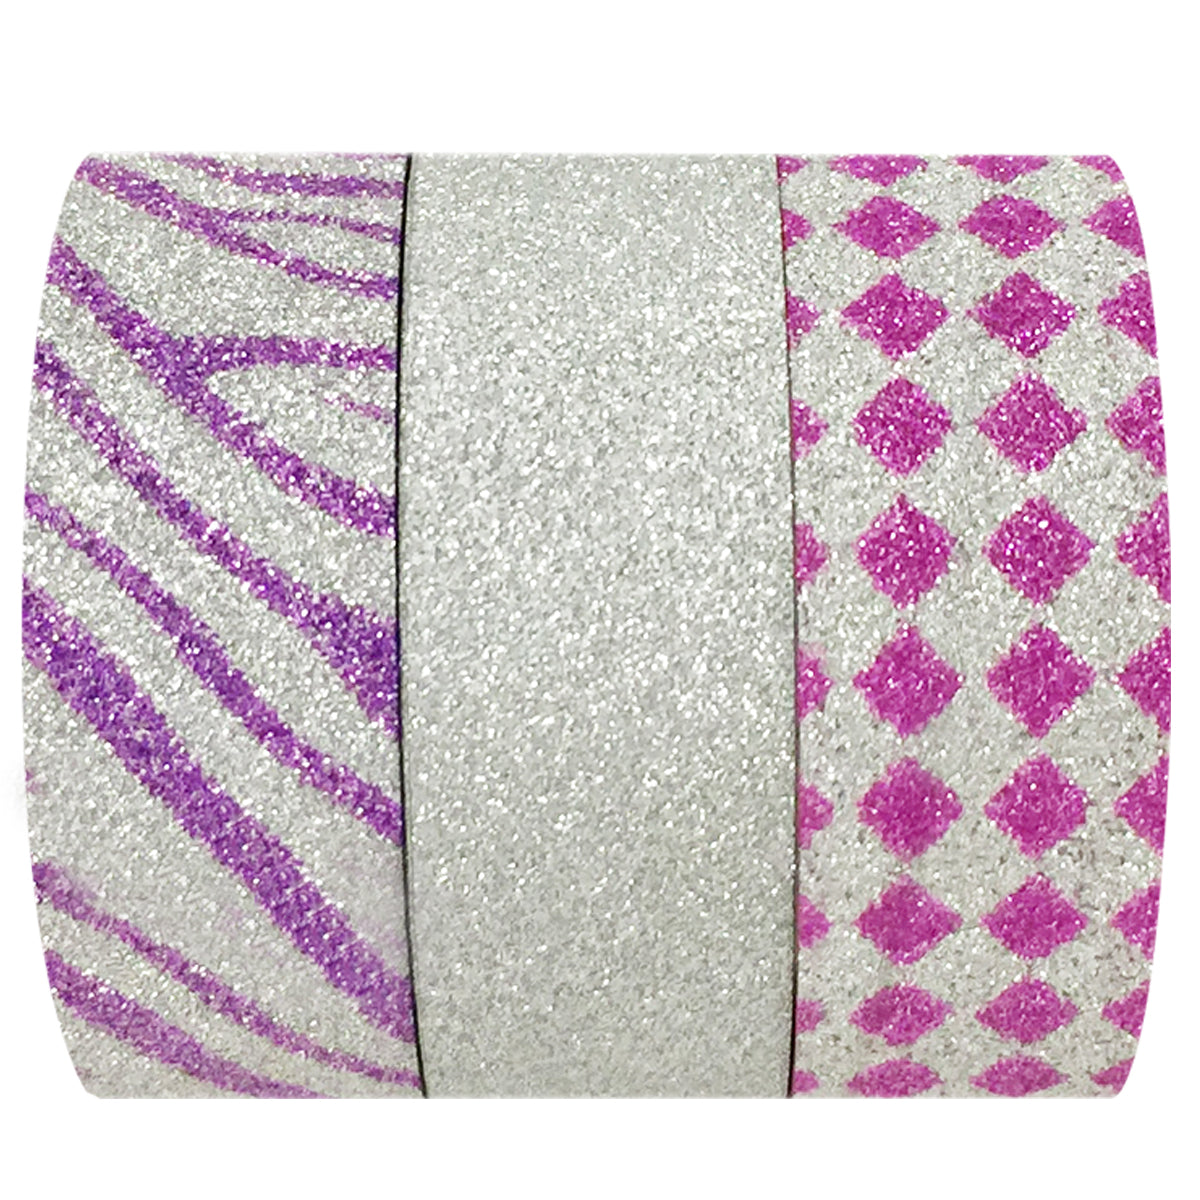 Wrapables Fuchsia Fusion Washi Masking Tape (set of 3)